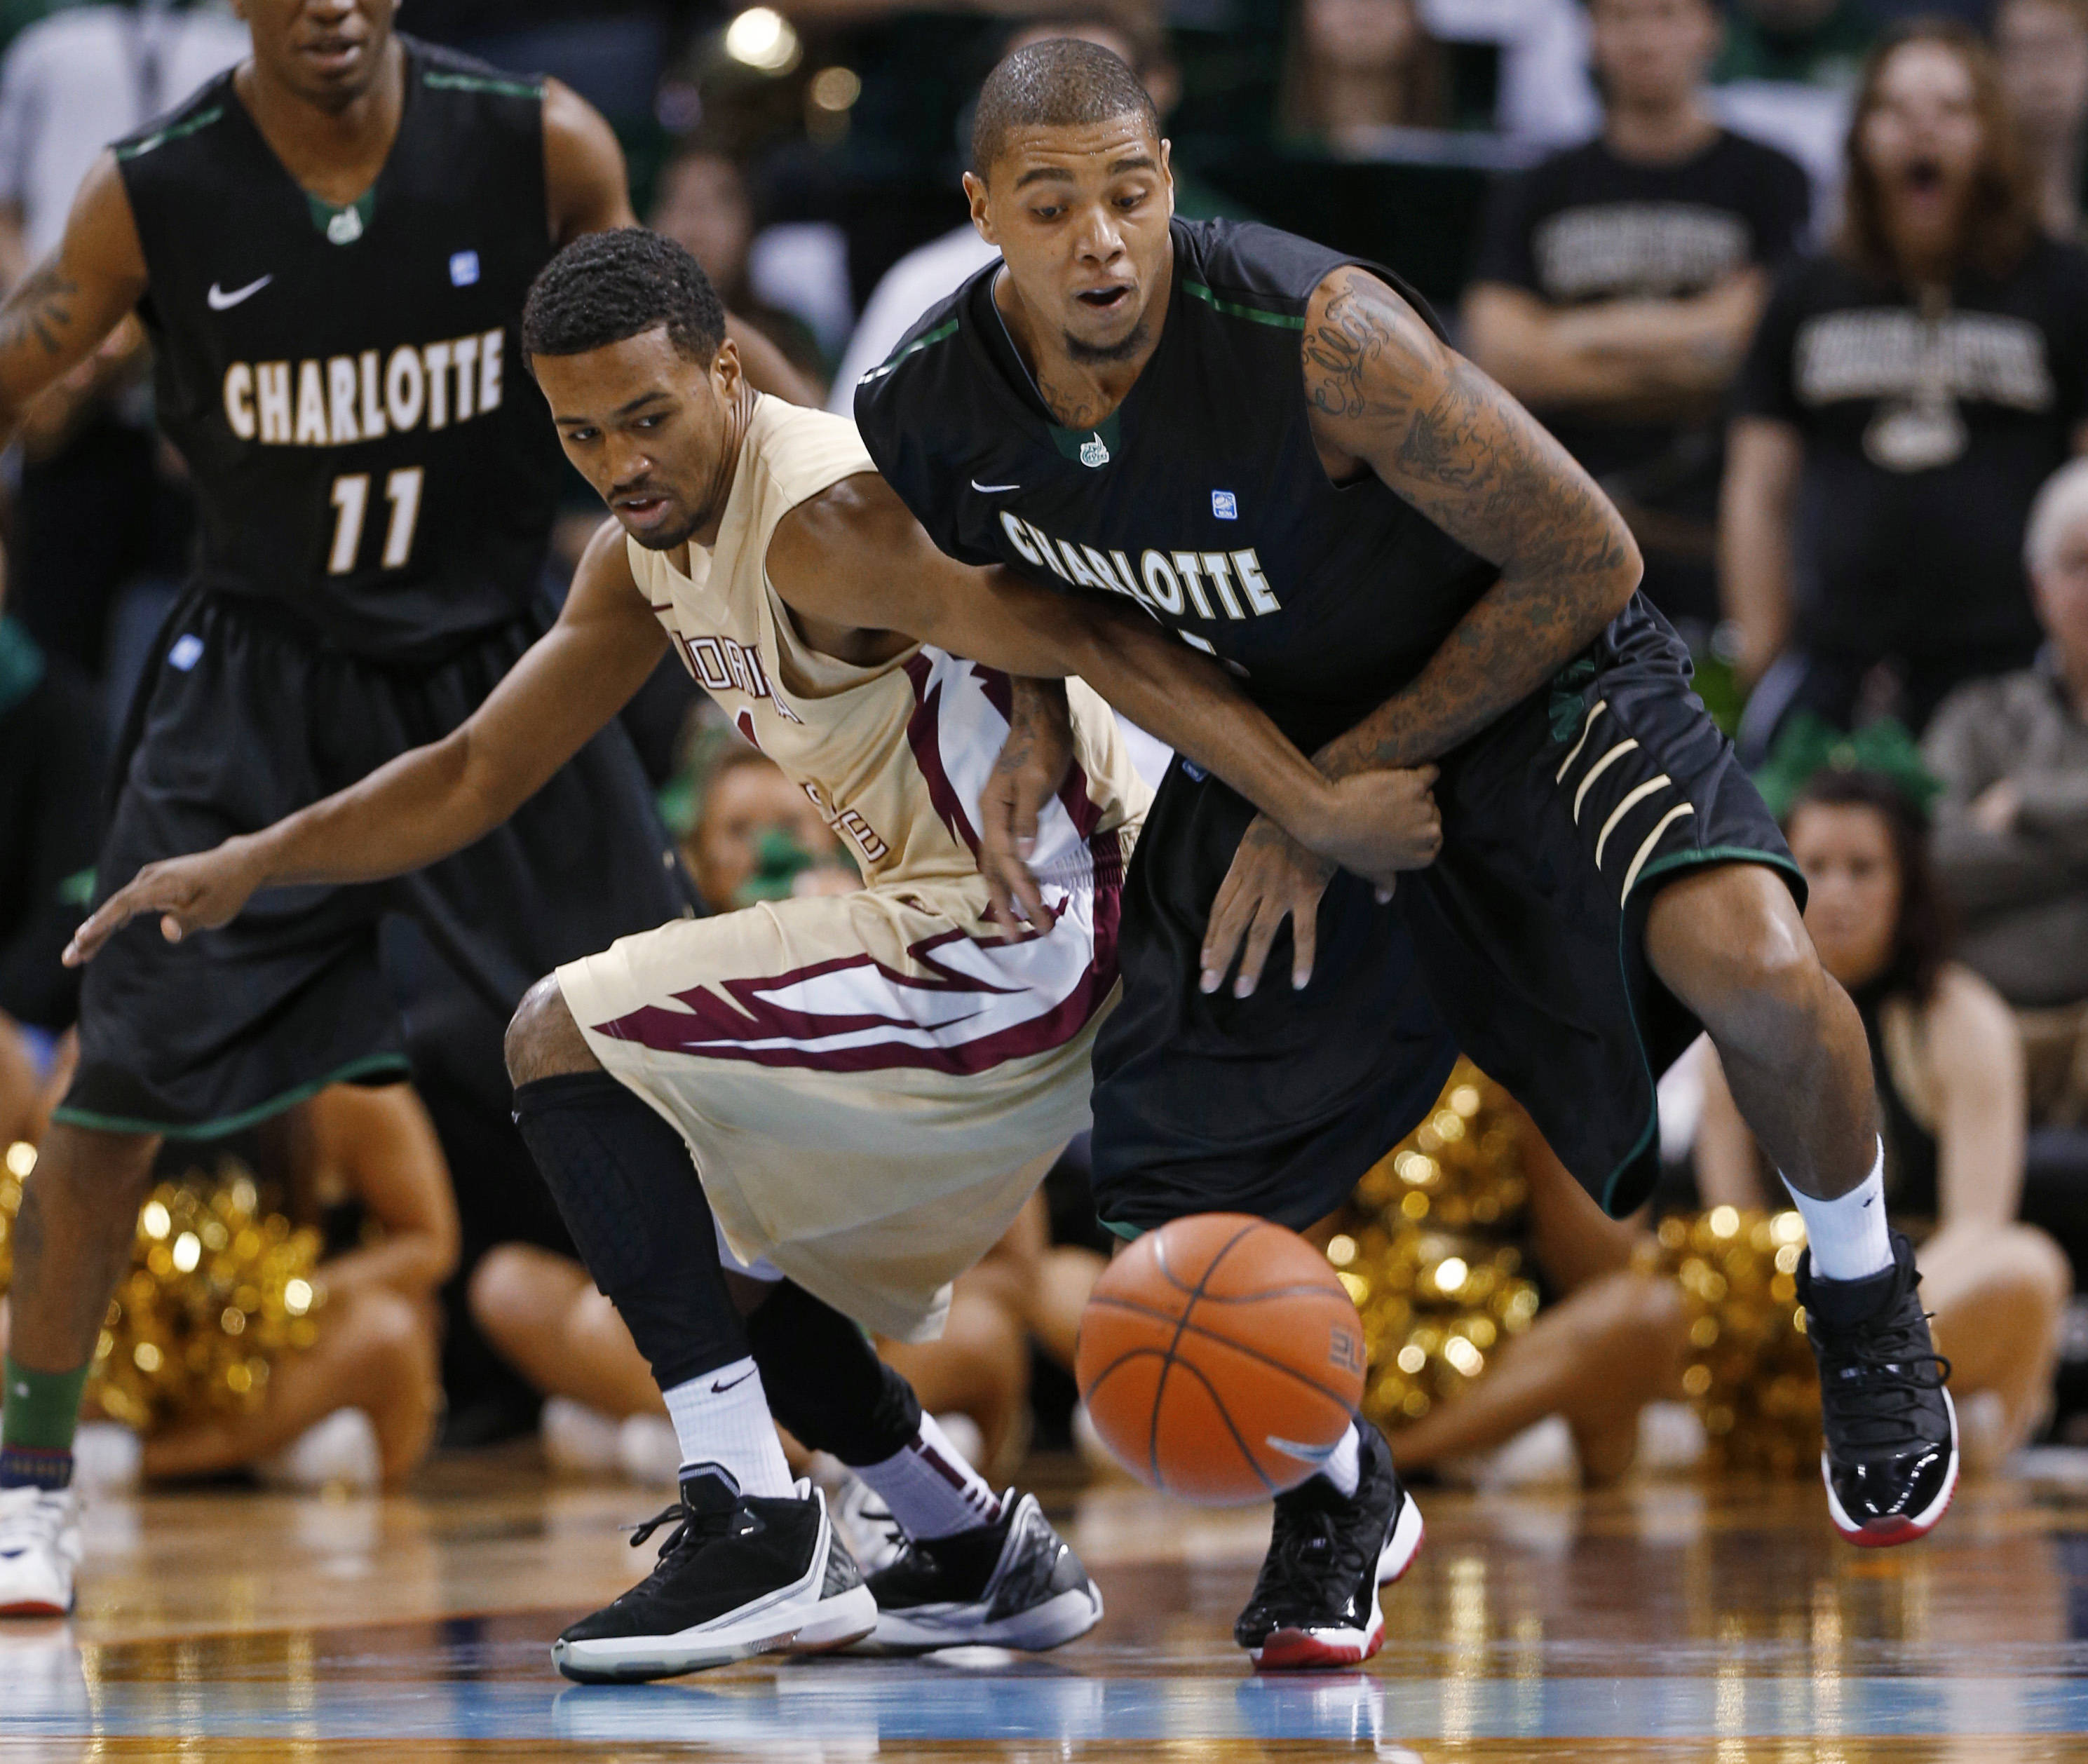 Charlotte's Chris Braswell, right, and Florida State's Devon Bookert, left, chase a loose ball during the second half. (AP Photo/Chuck Burton)